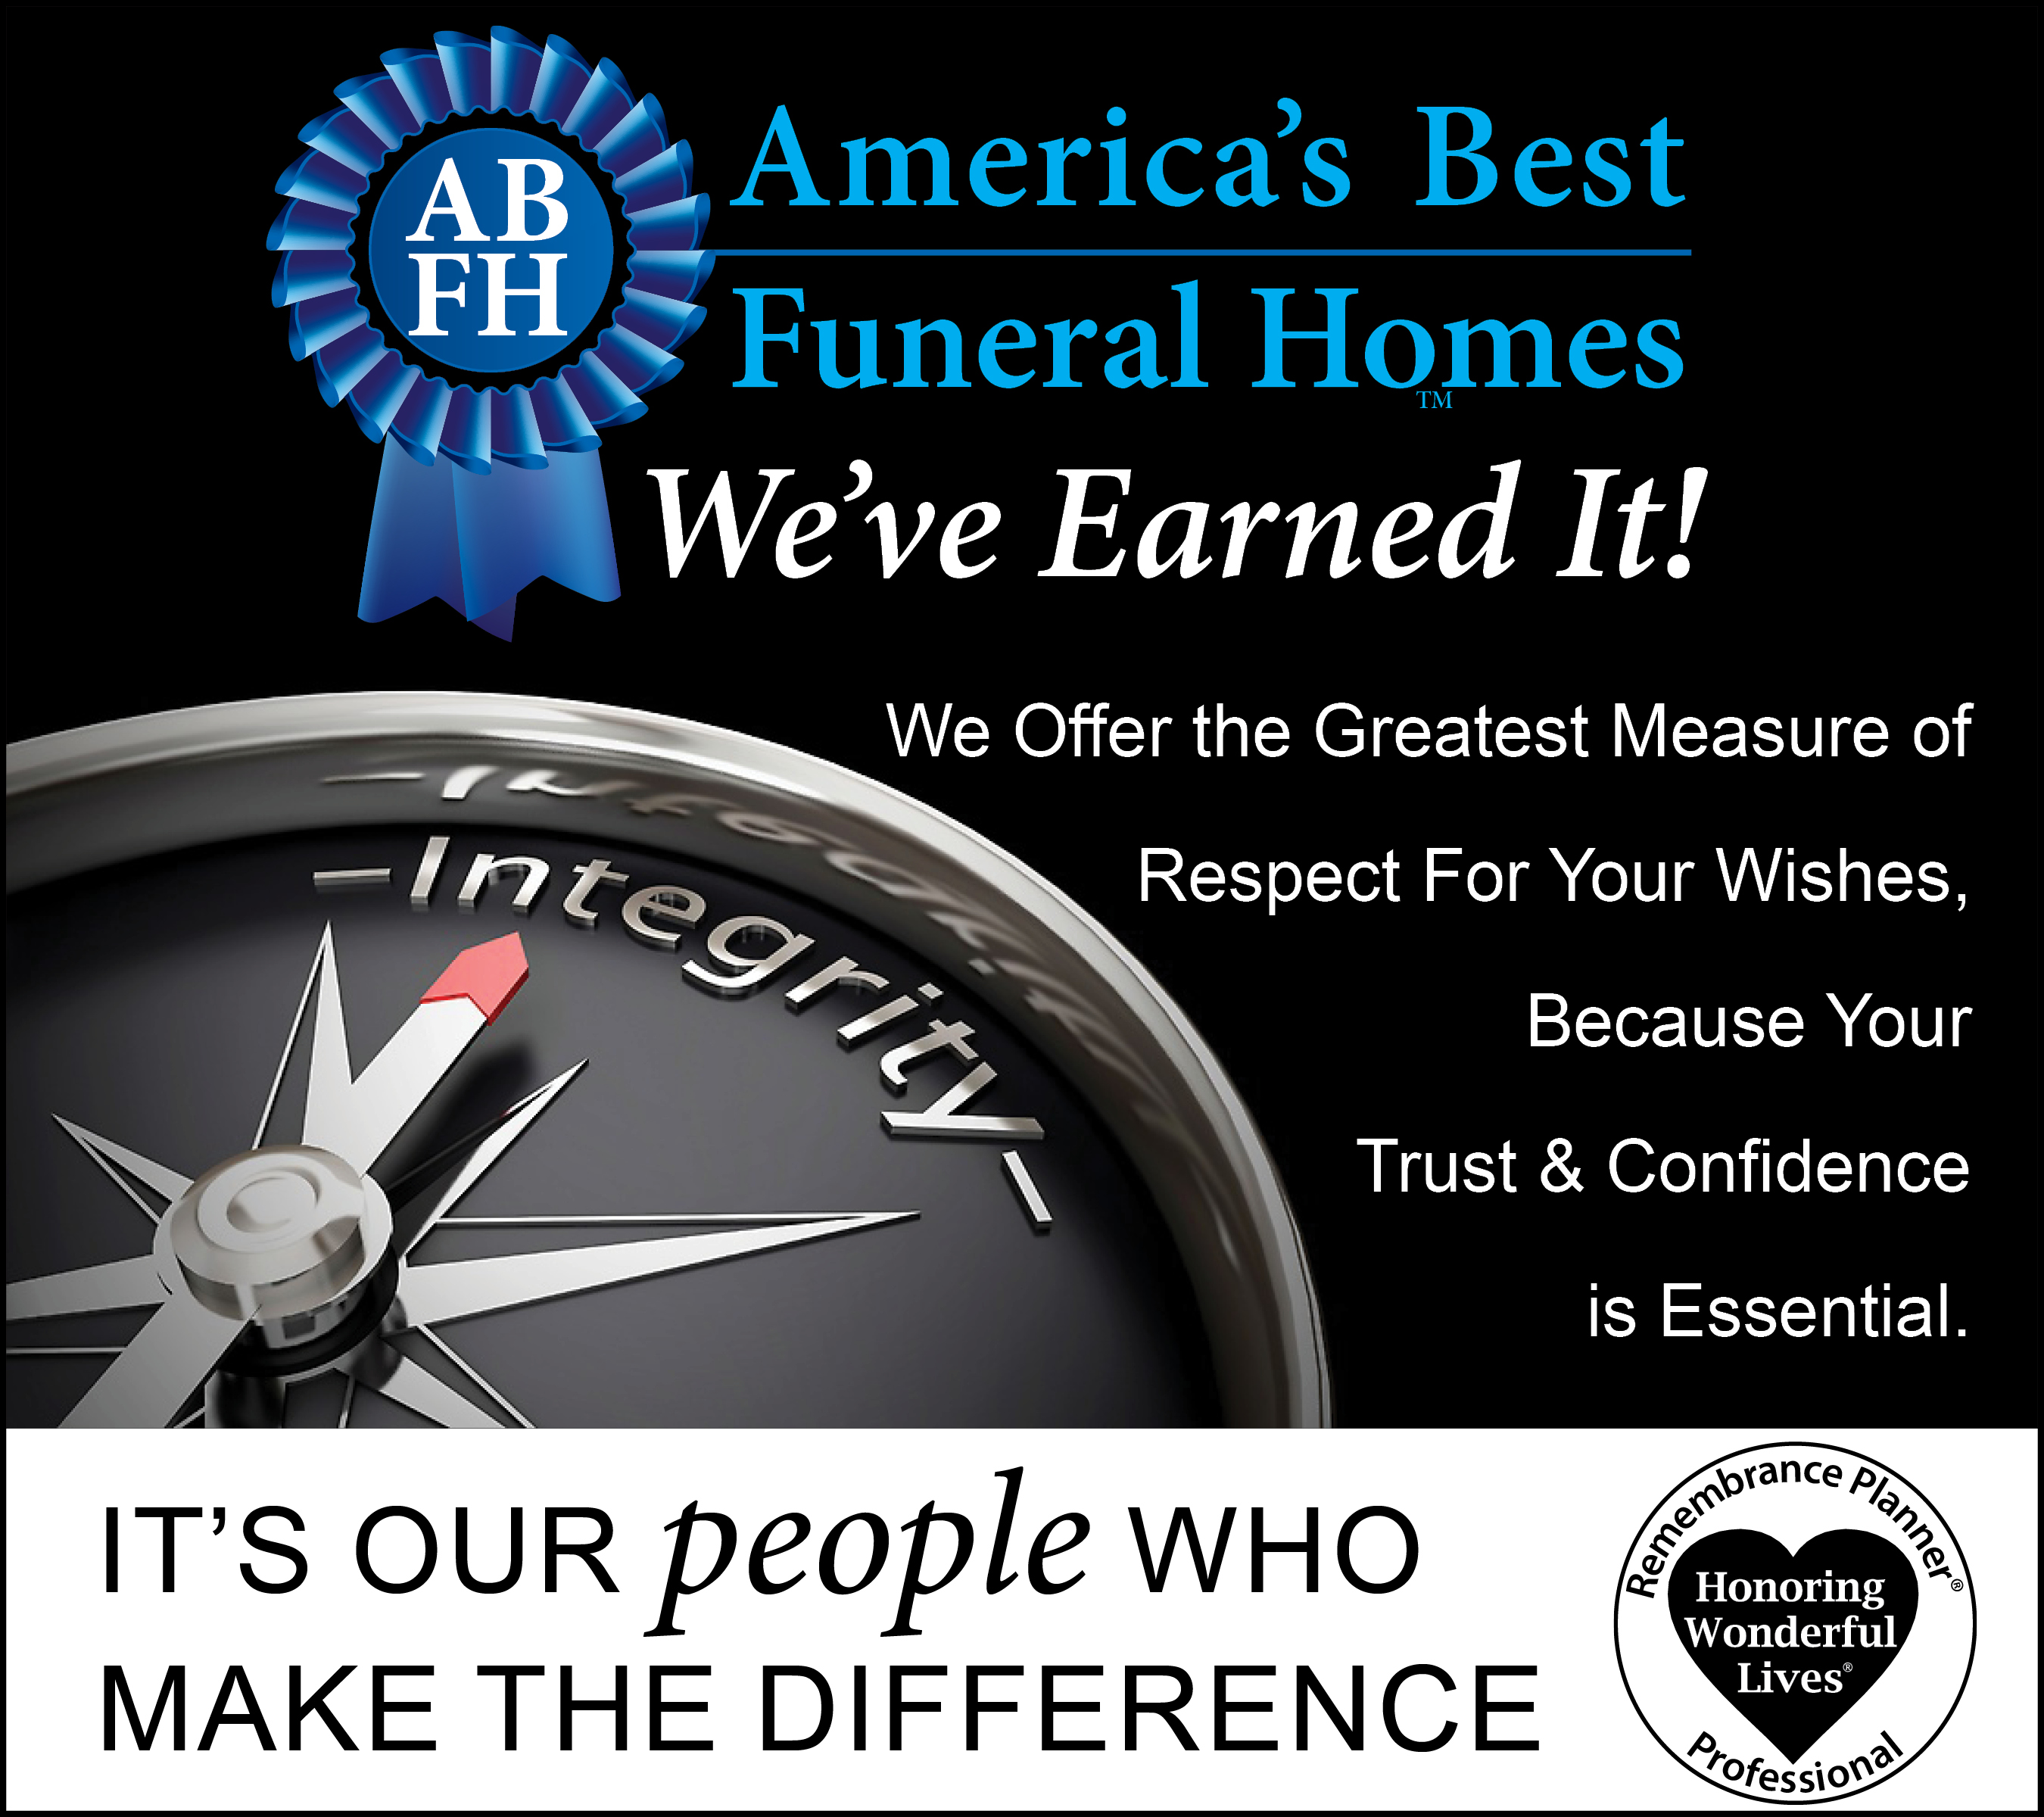 Custer-Glenn Funeral Home & Cremation Services & Unforgettable Tails Pet Cremation Services reviews | Cremation Services at 2284 Benden Drive - Wooster OH